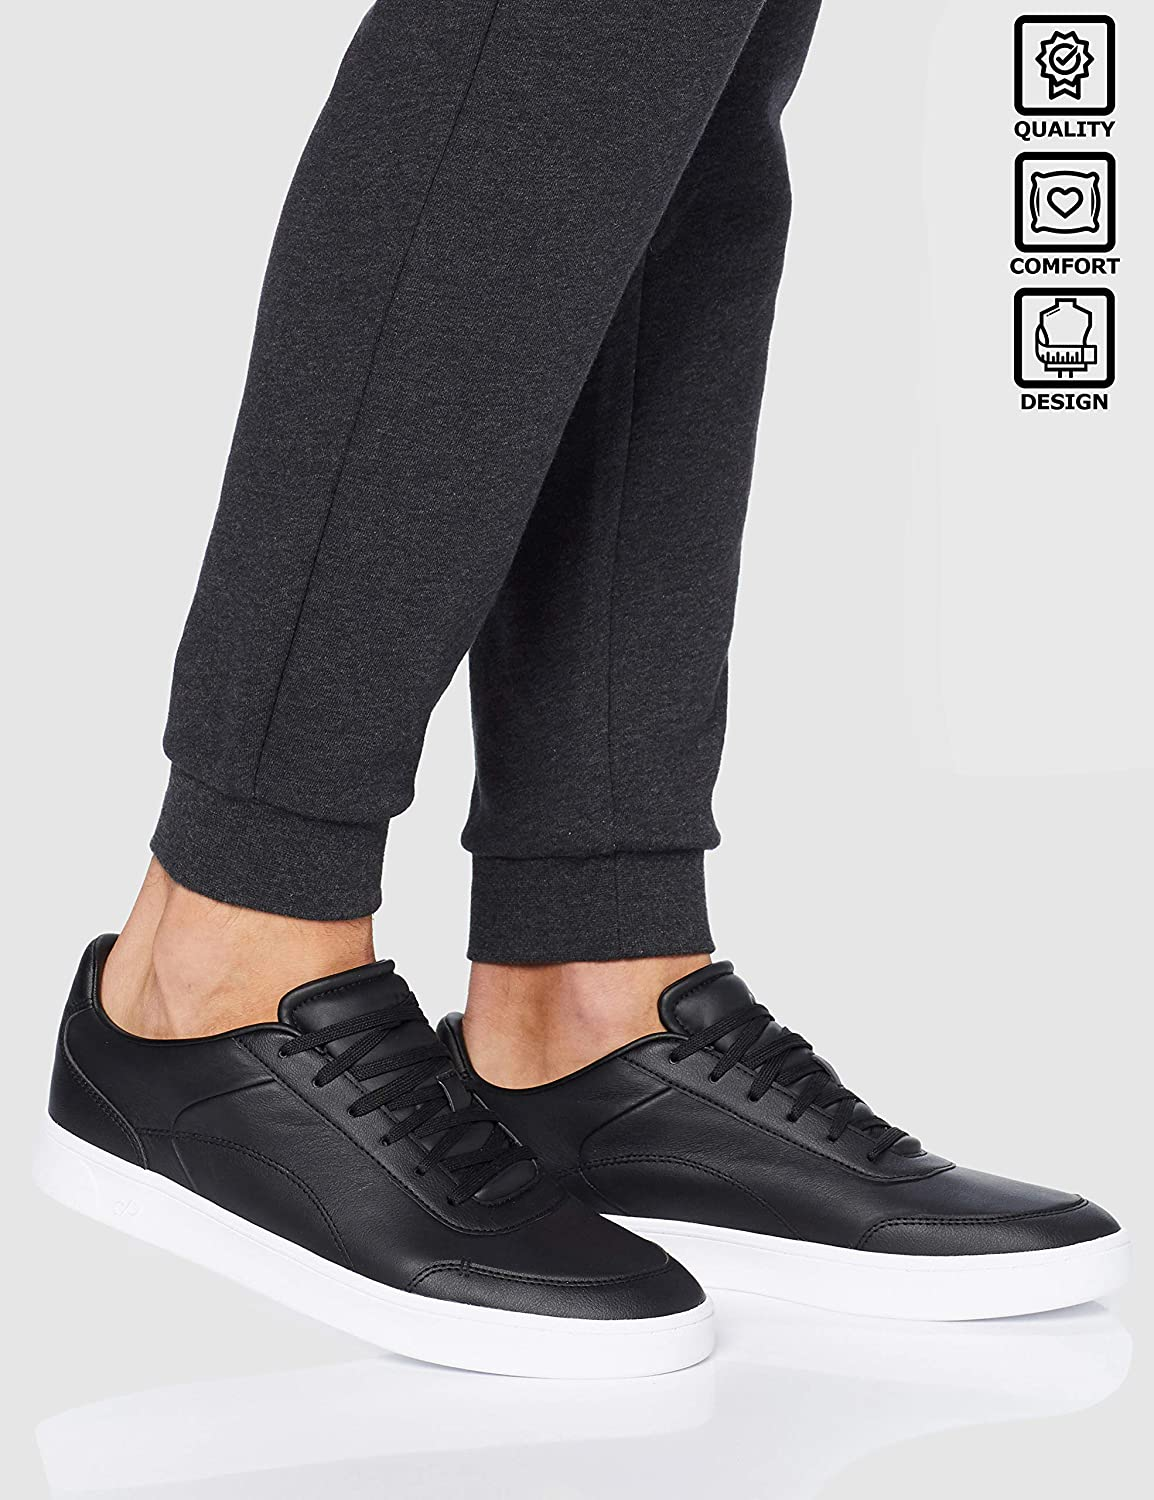 Amazon.com: CARE OF by PUMA Men's 372886 Low-Top Sneakers ...